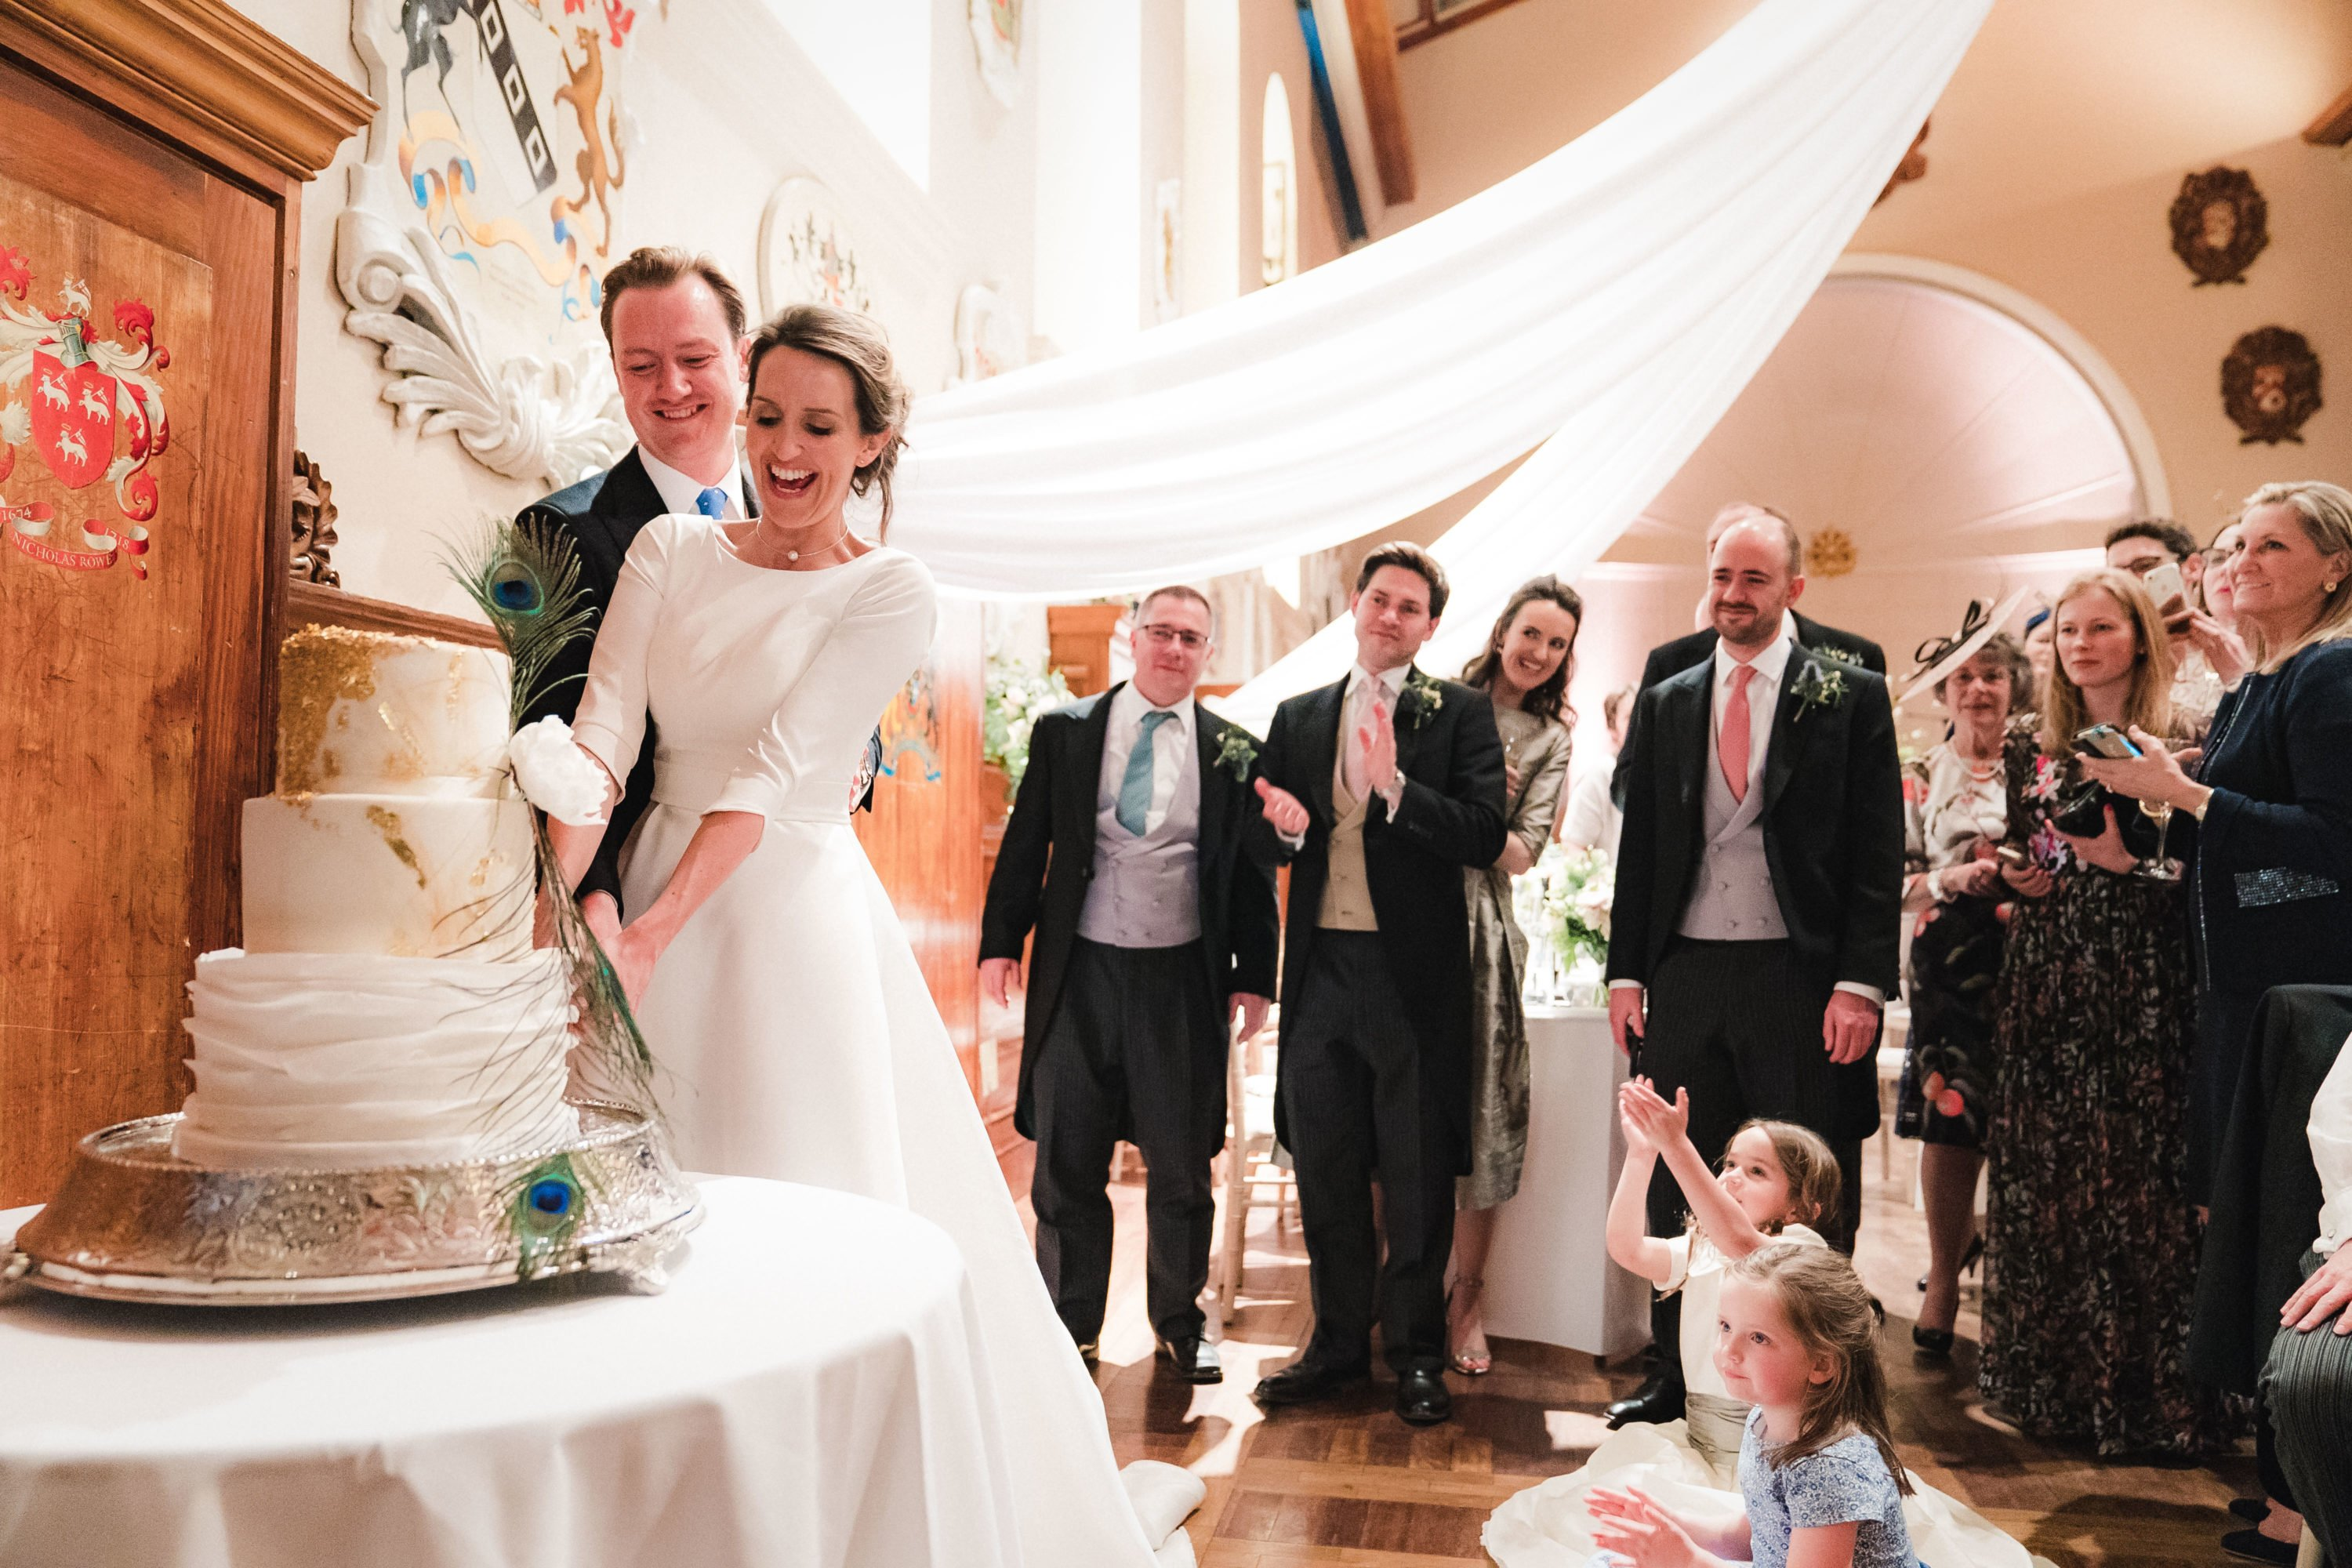 Luxury Wedding Cake, The Cake Architect, Bradford-on-Avon